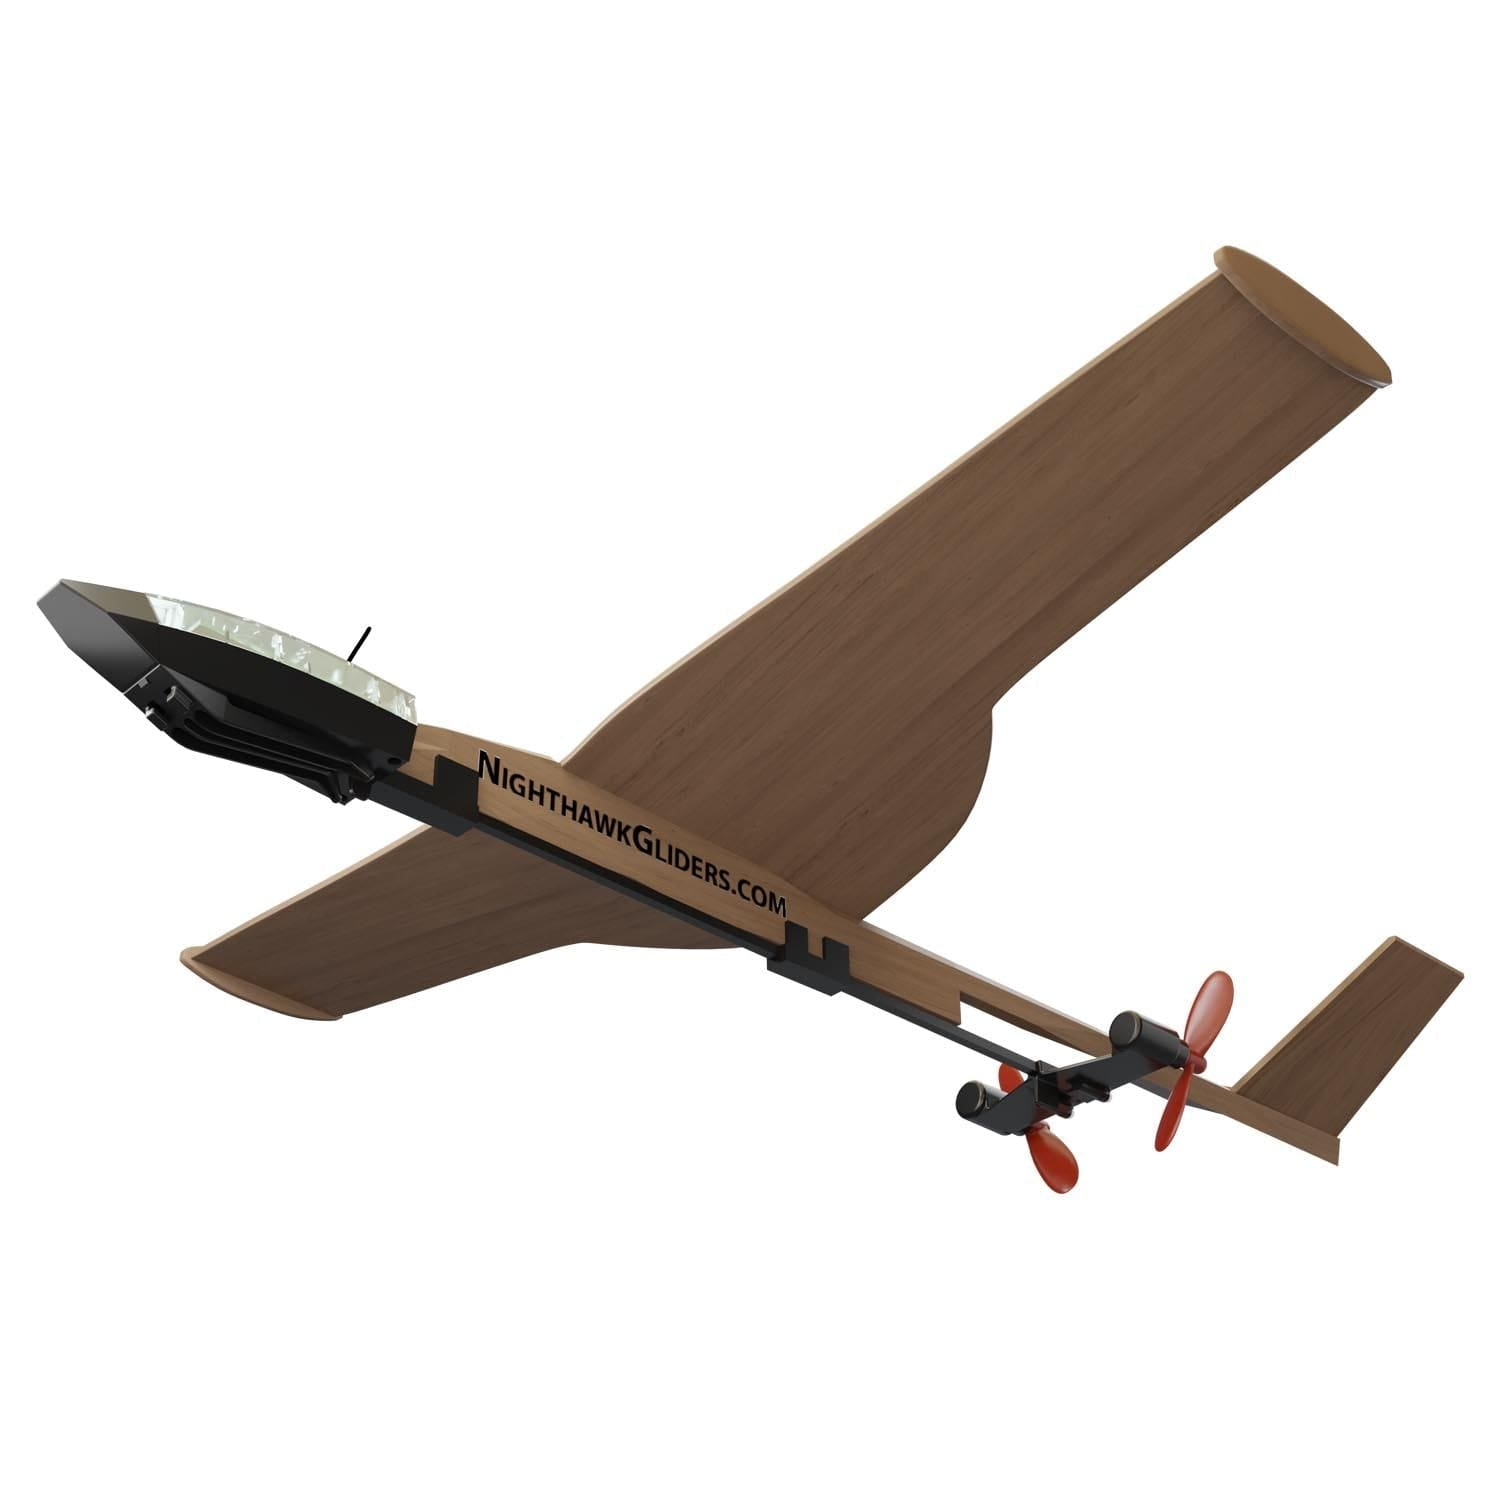 Tornado Updraft 12 - Balsa Airplane Kit